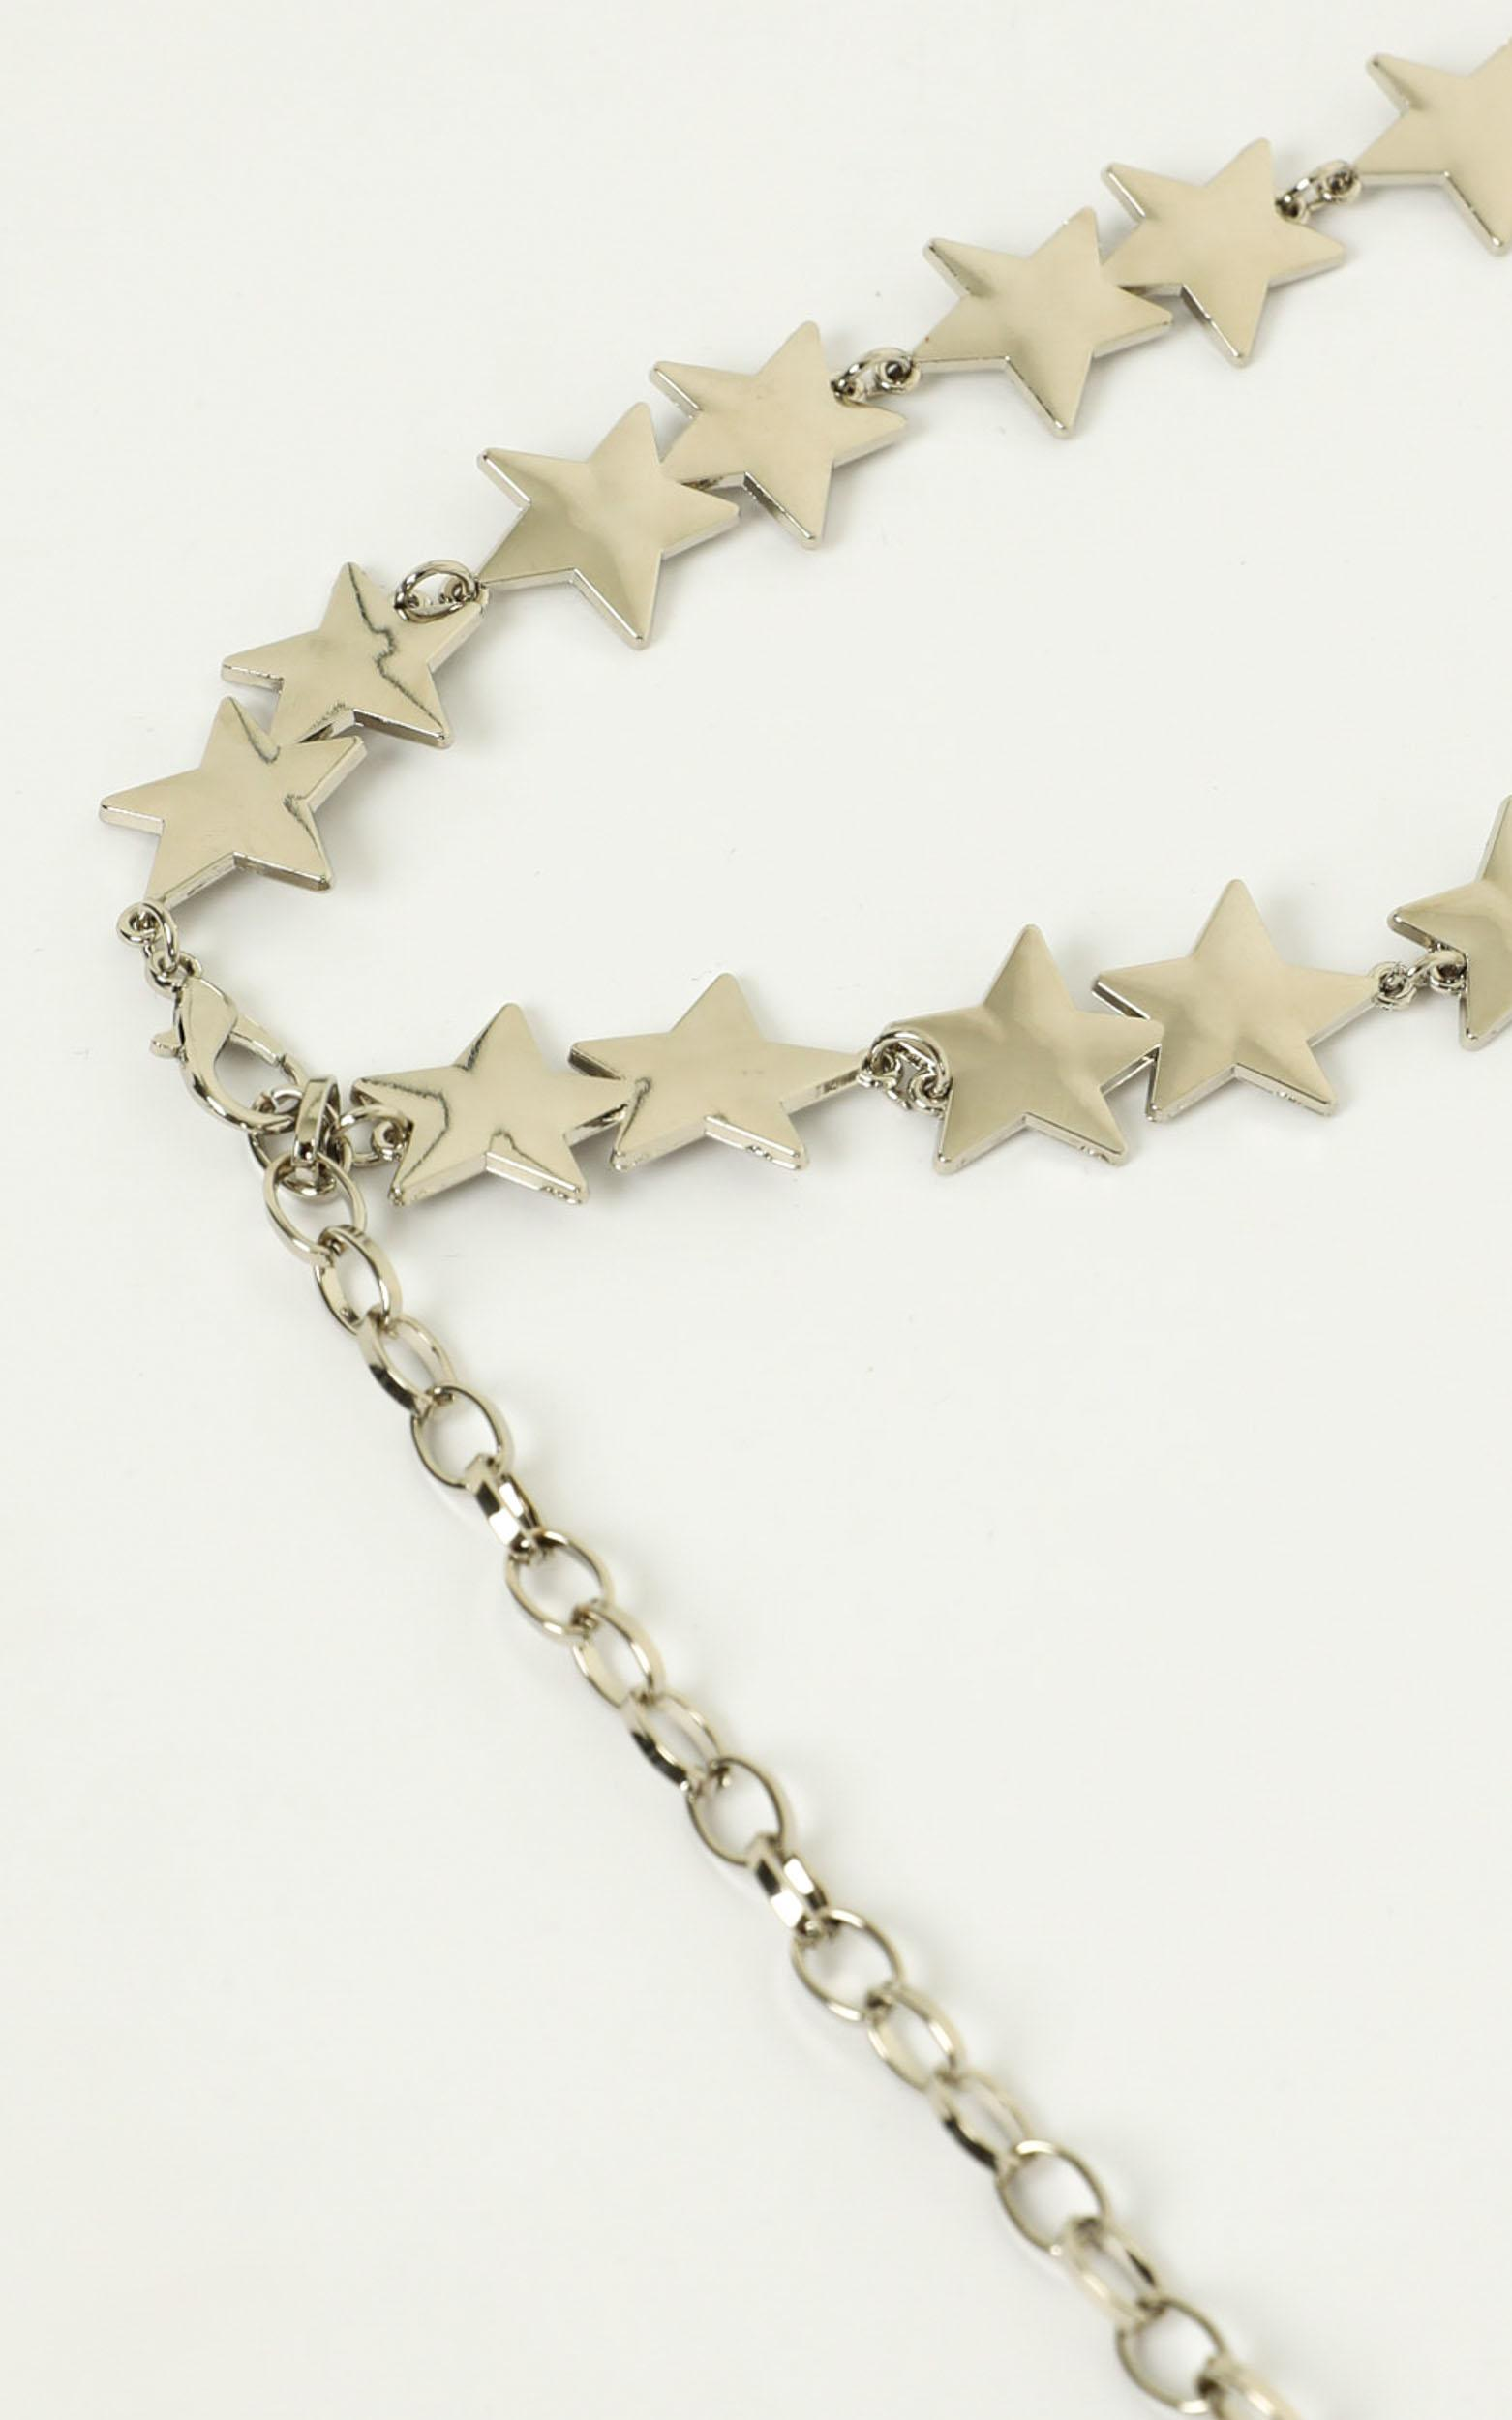 Touch The Sky Chain Belt In Silver, Gold, hi-res image number null